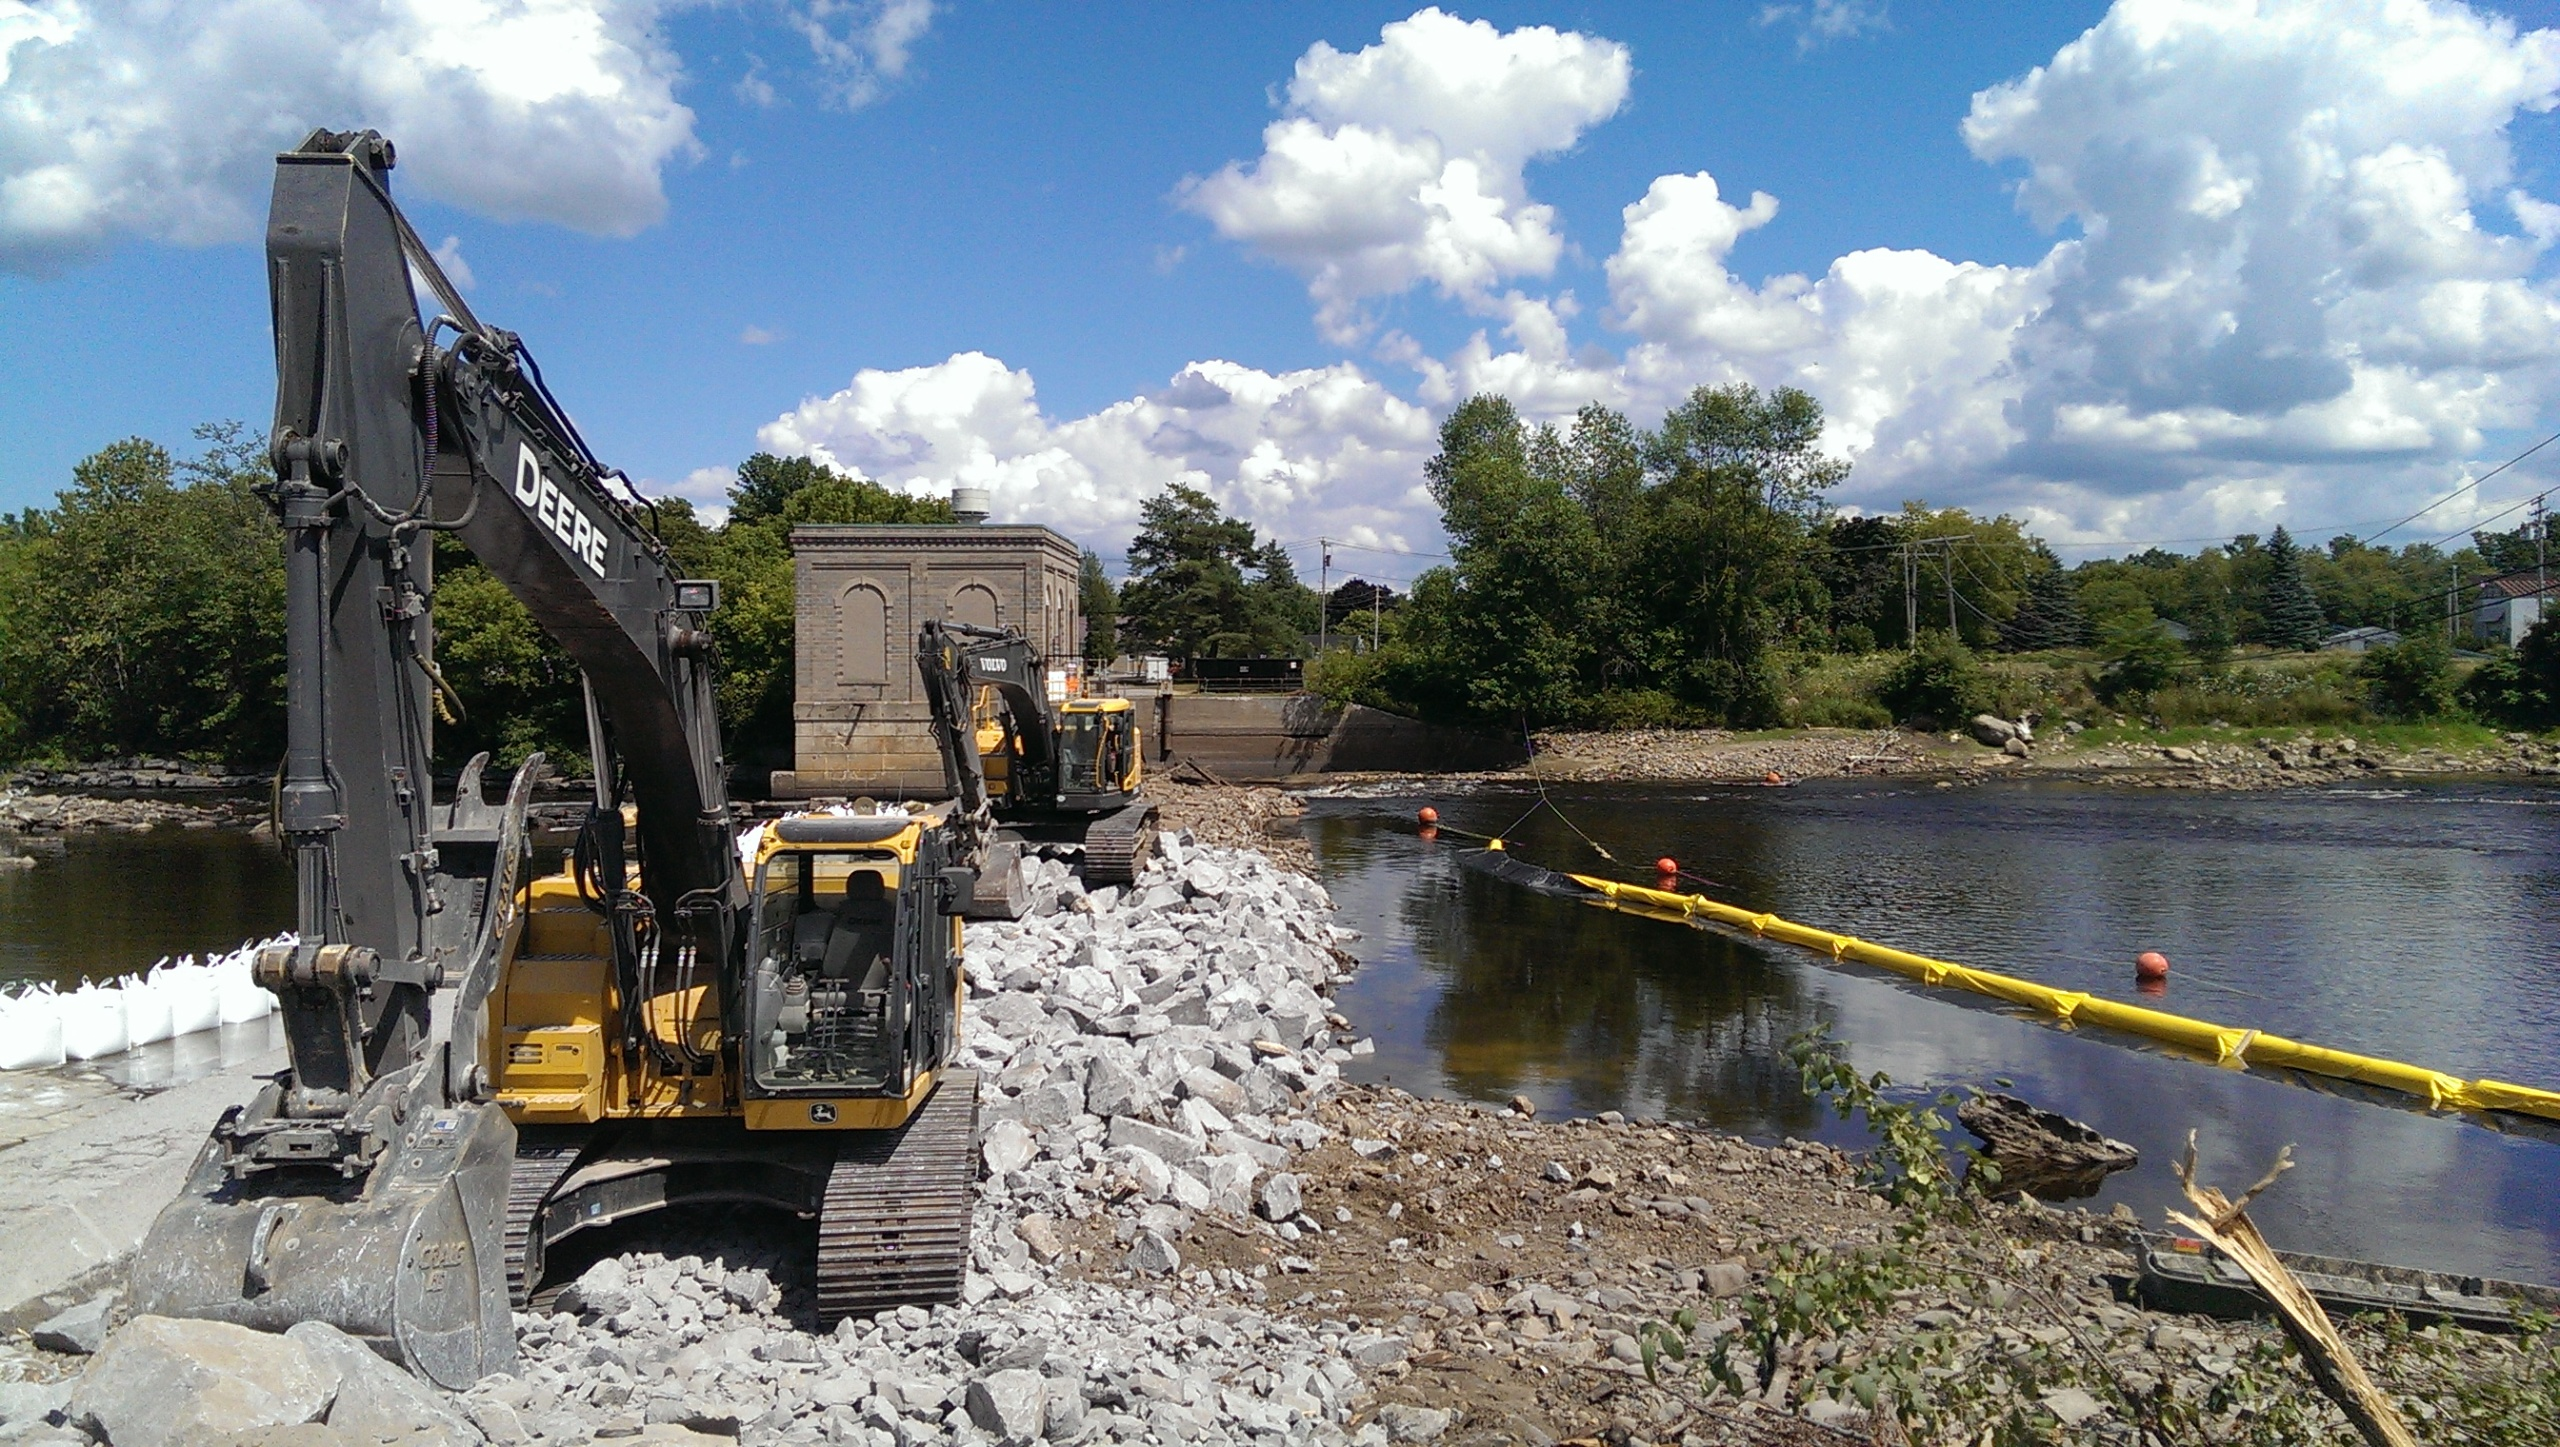 Heavy machinery at hogansburg dam